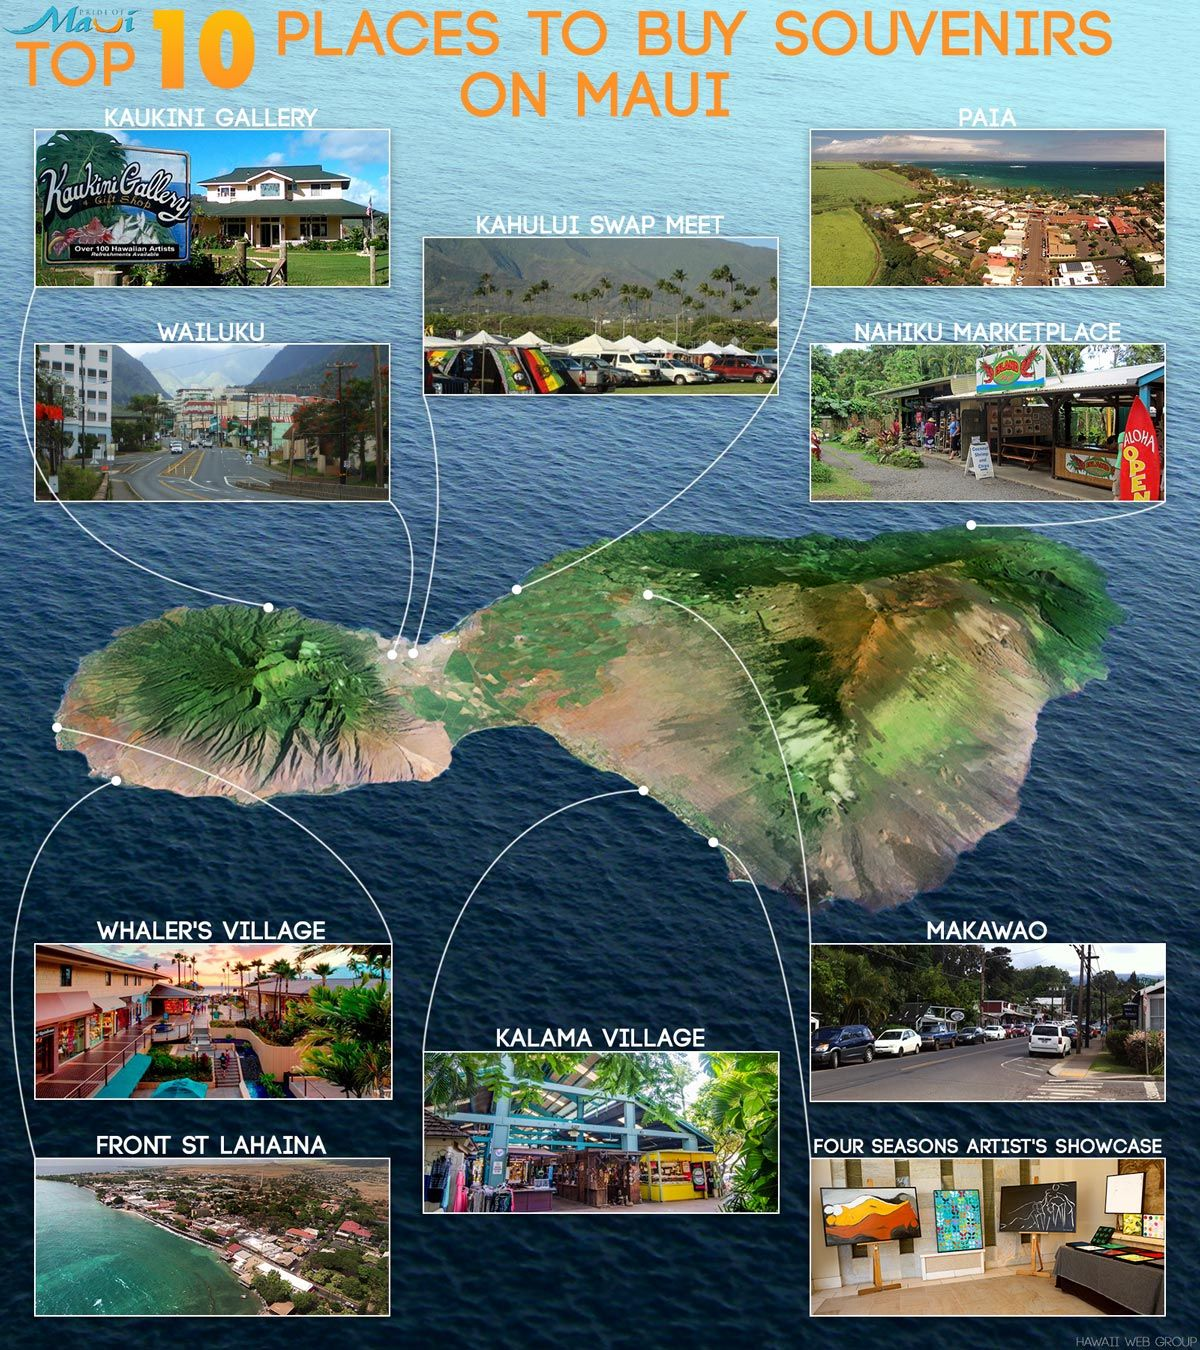 Top 10 Places To Travel As A Couple: Top 10 Places To Buy Souvenirs On Maui